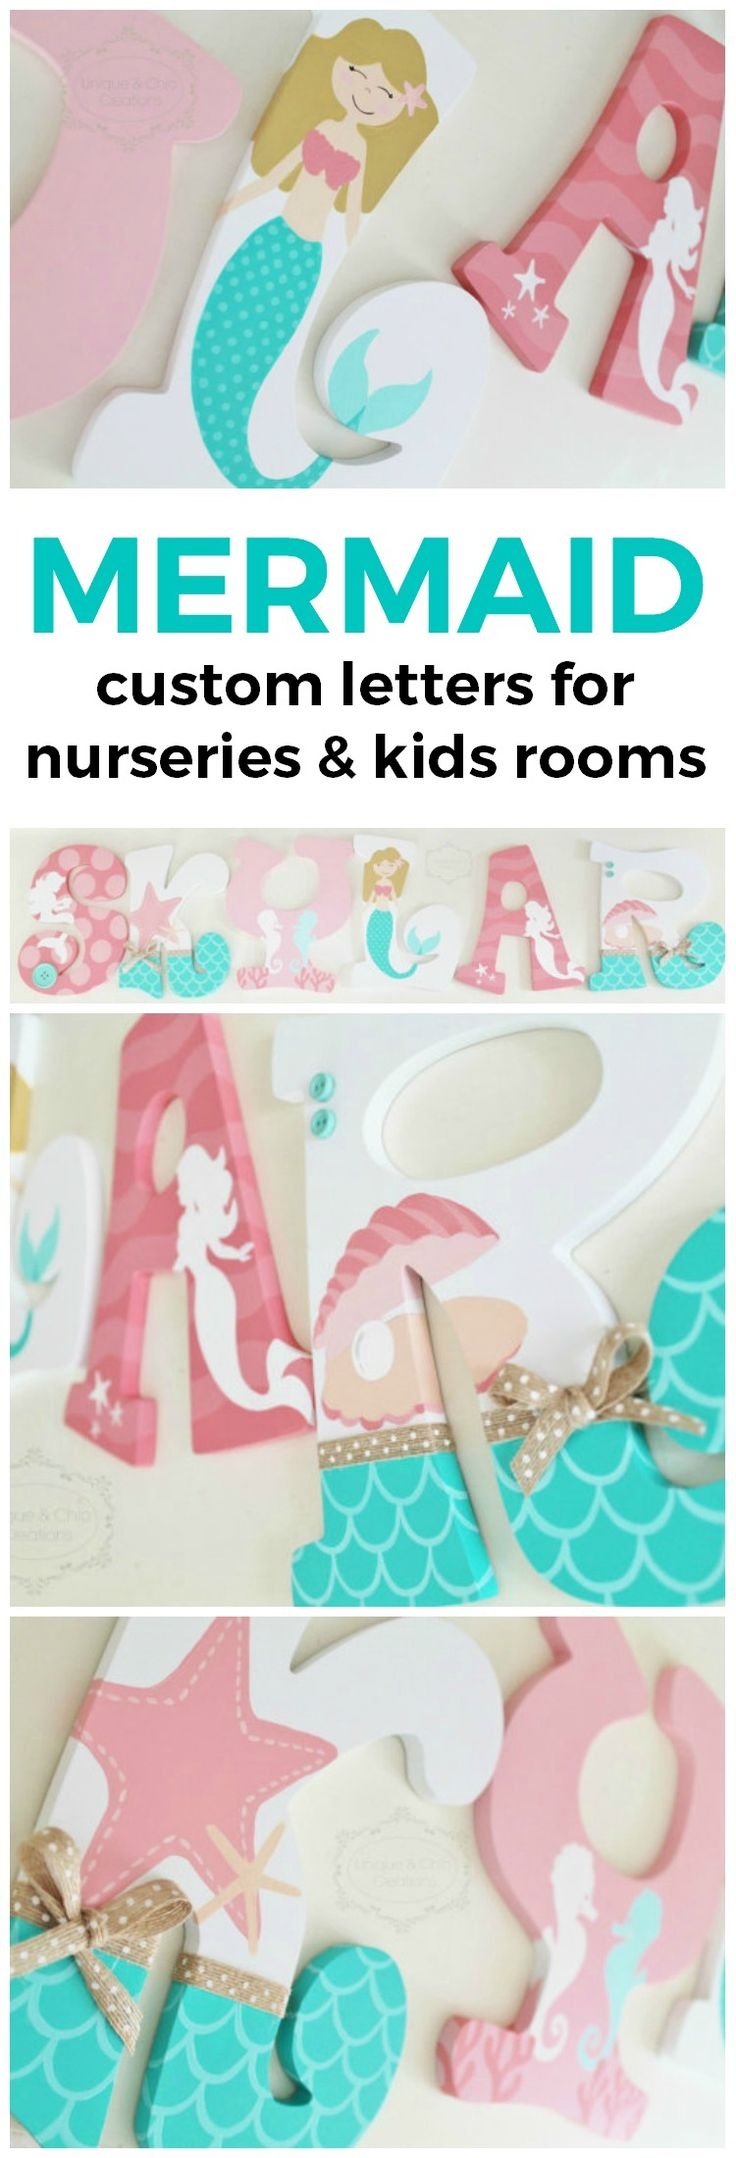 Coral and Mint Mermaid Themed Personalized Wooden Letters for Nursery | Unique and Chic Creations custom kids room letters